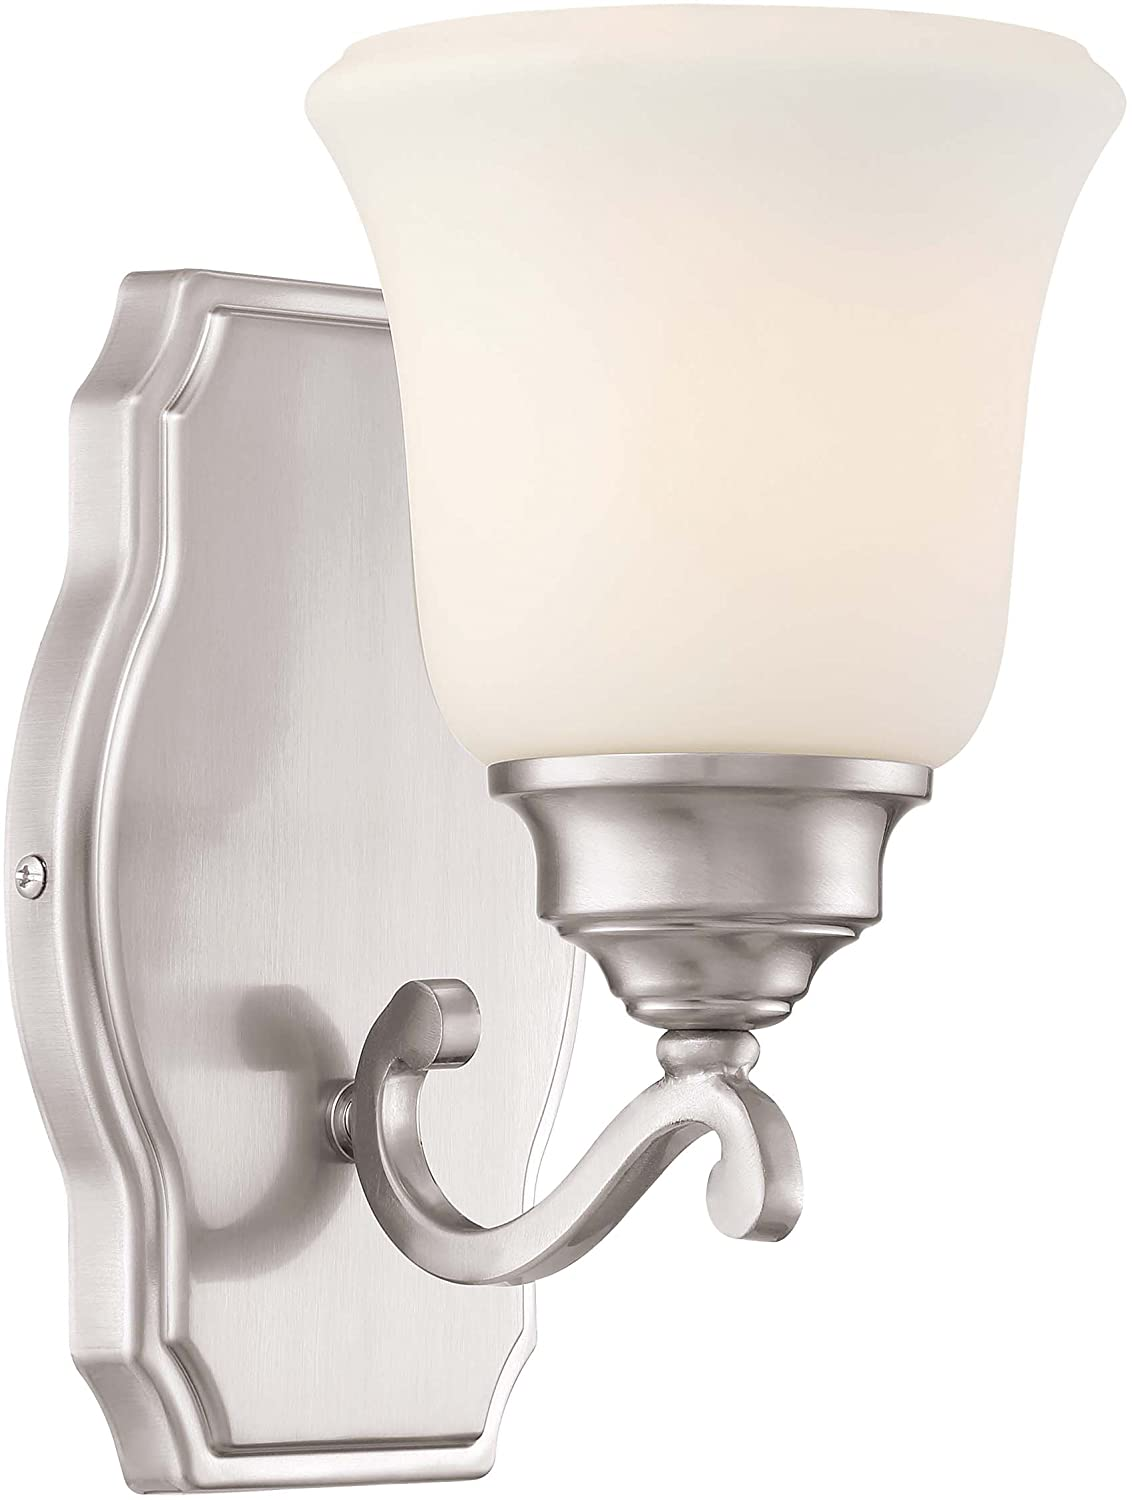 Minka Lavery Wall Light Fixtures 3321-84 Savannah Row Wall Bath Vanity Lighting, 1-Light 100 Watts, Brushed Nickel